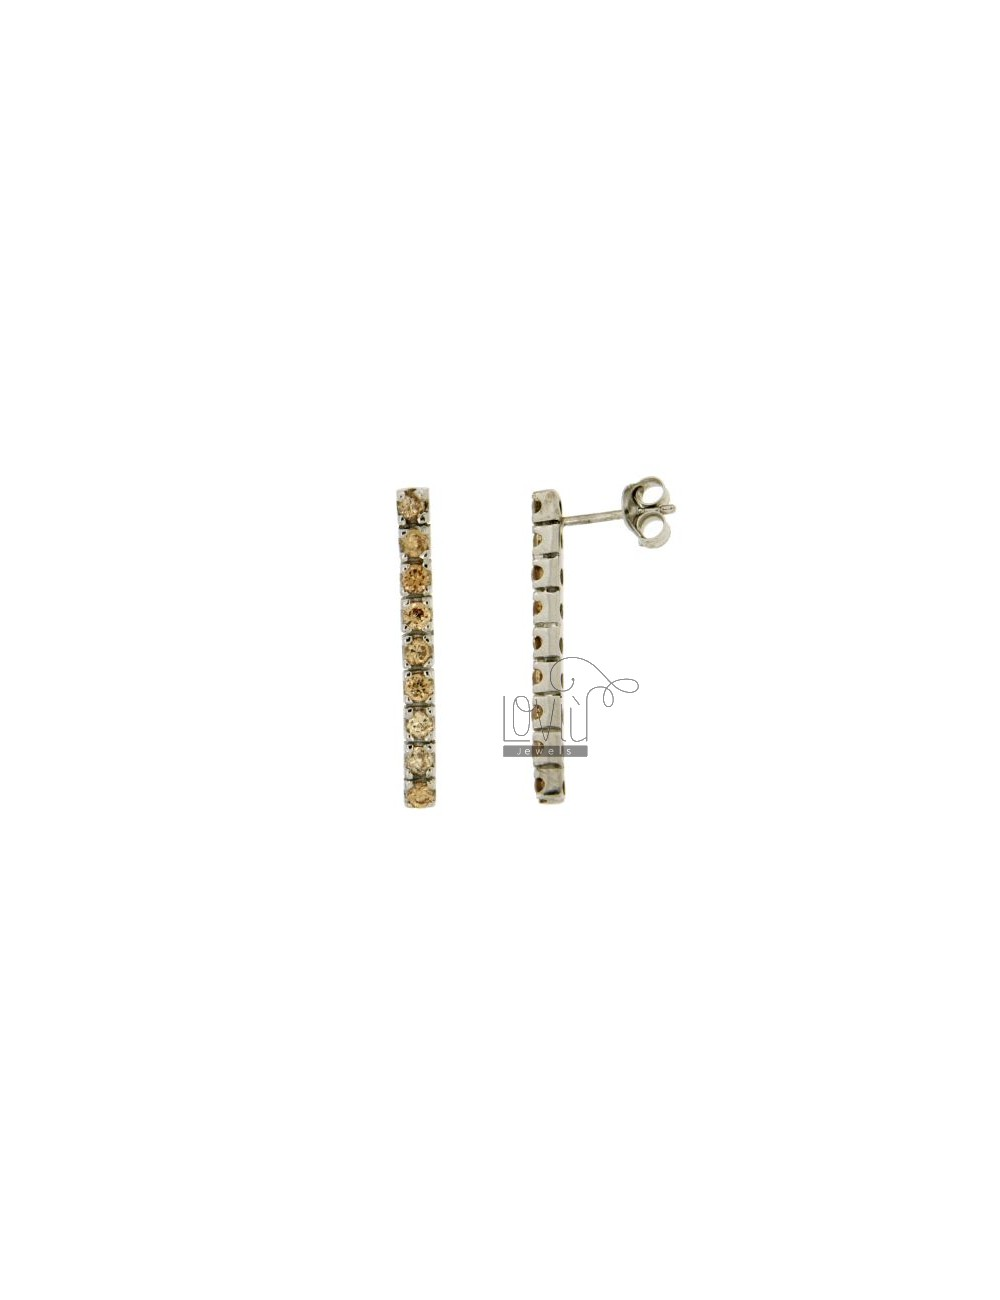 MATCH 9 ZIRCONIA EARRINGS WITH CHAMPAGNE SILVER 2.5 MM TIT 925 ‰